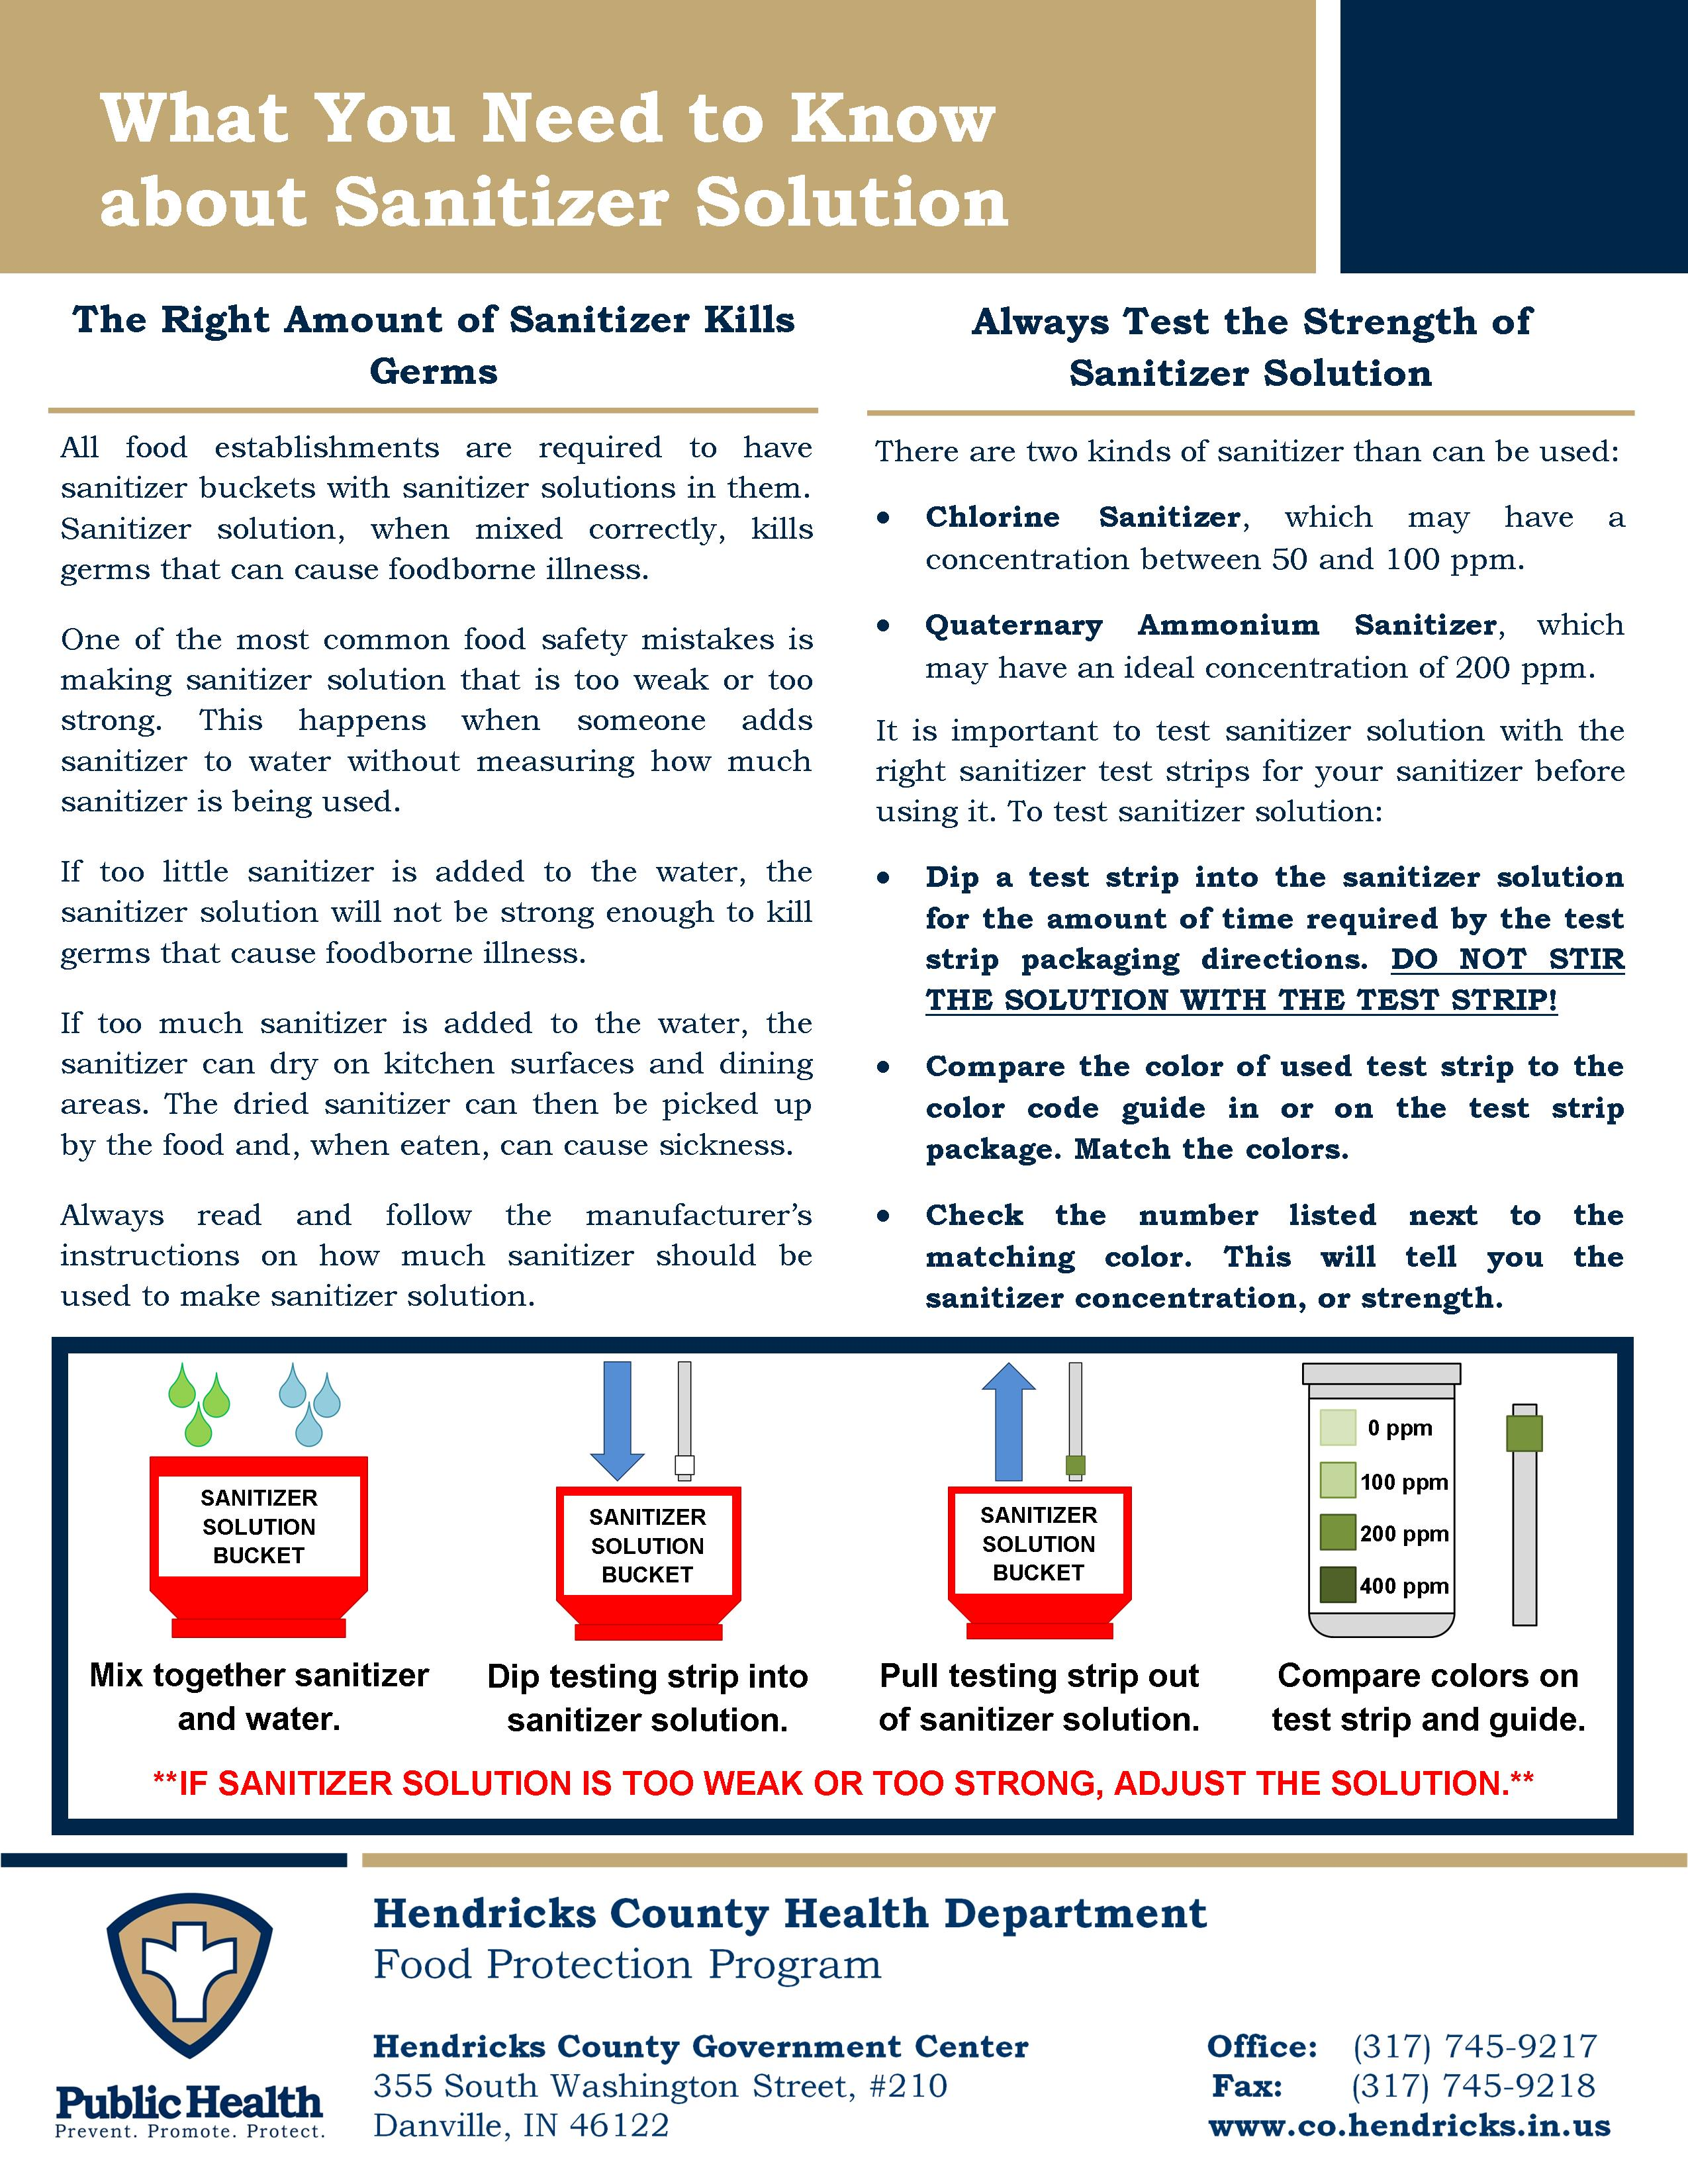 What You Need to Know about Sanitizer Solution